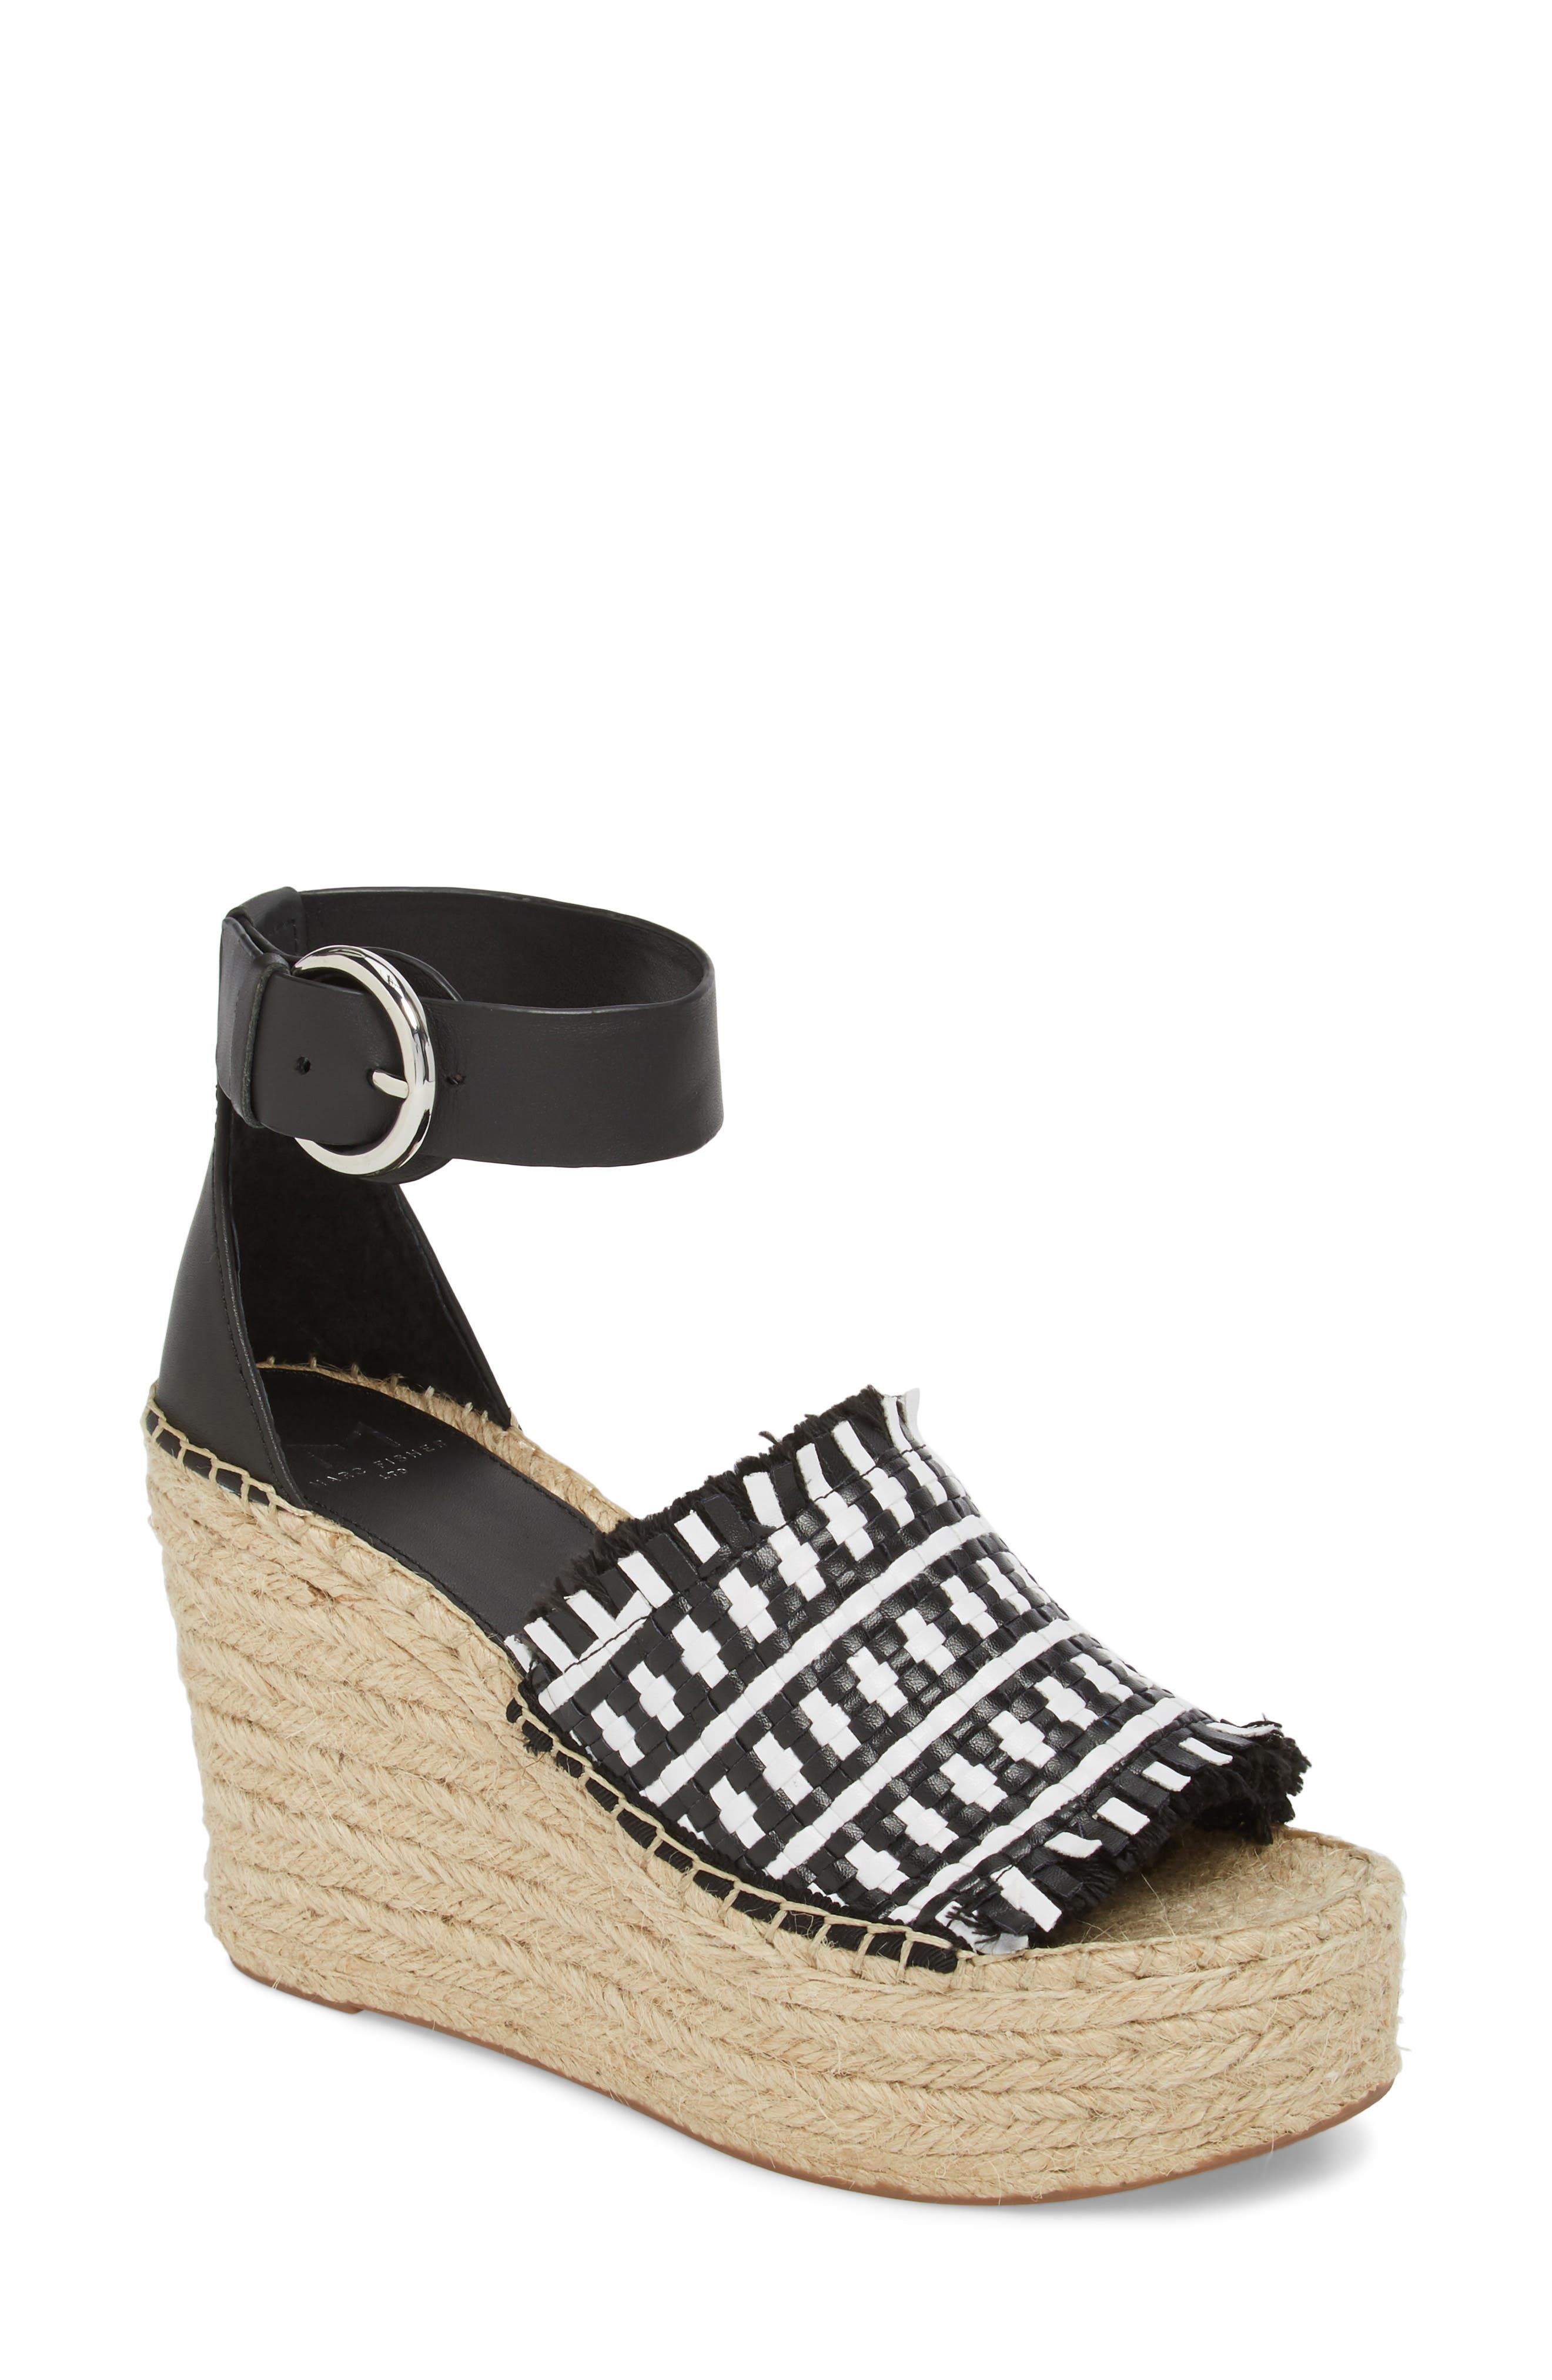 Andrew Espadrille Wedge Sandal,                         Main,                         color, White/ Black Leather